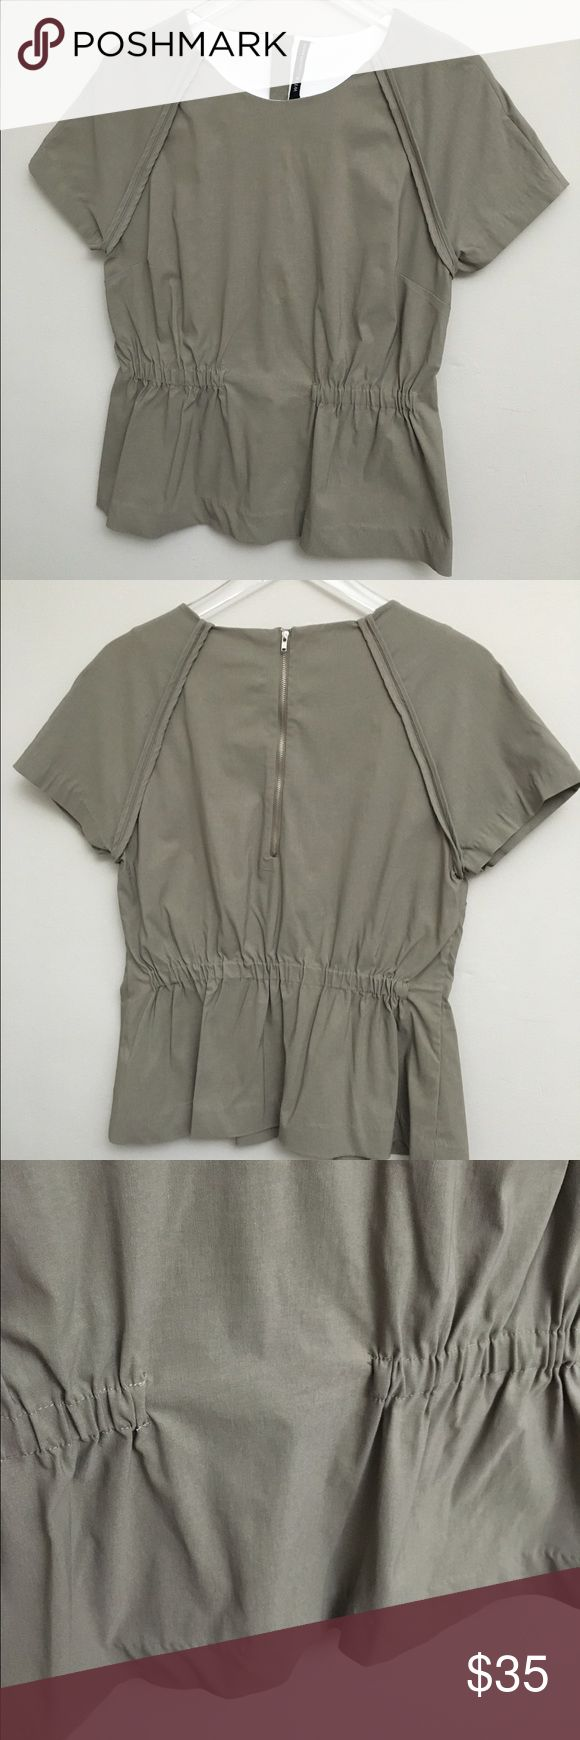 NWT Walter Baker W118 Taupe Bennett Top Large New with tags Walter Backer (W118) top. Bennett style. Taupe color. Short sleeves. MSRP: $128 W118 by Walter Baker Tops Blouses